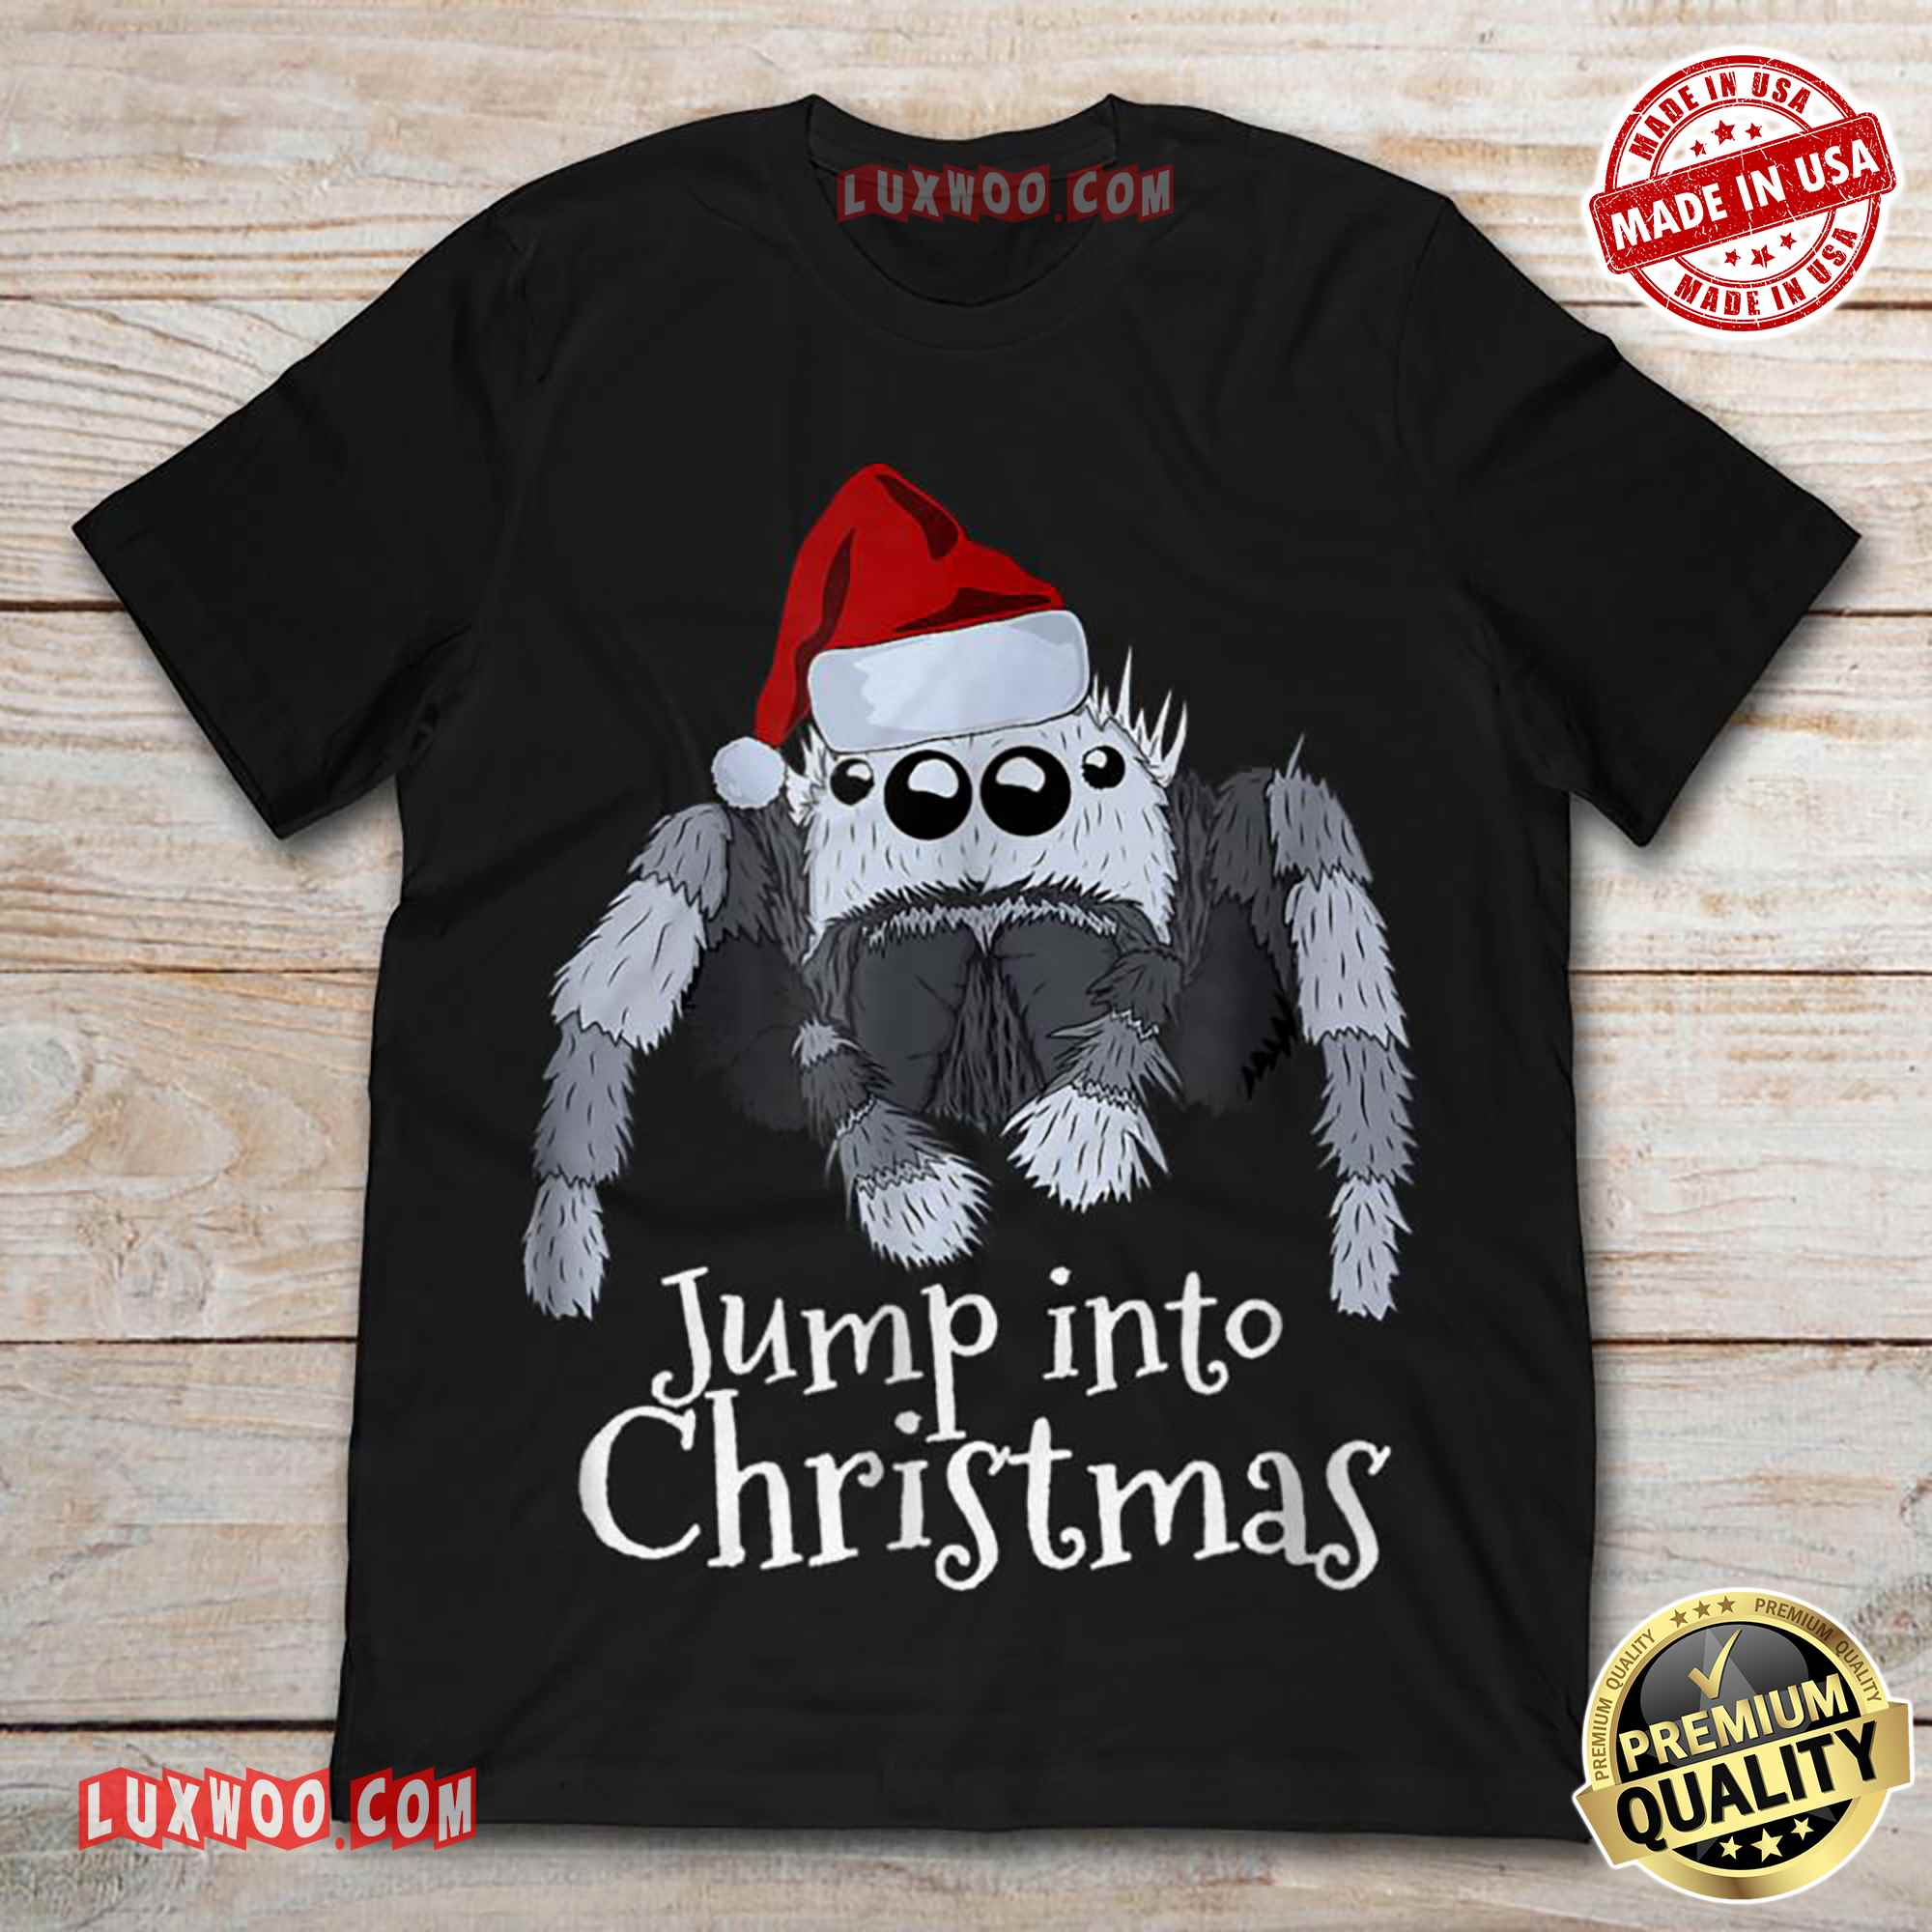 Jump Into Christmas Tee Shirt